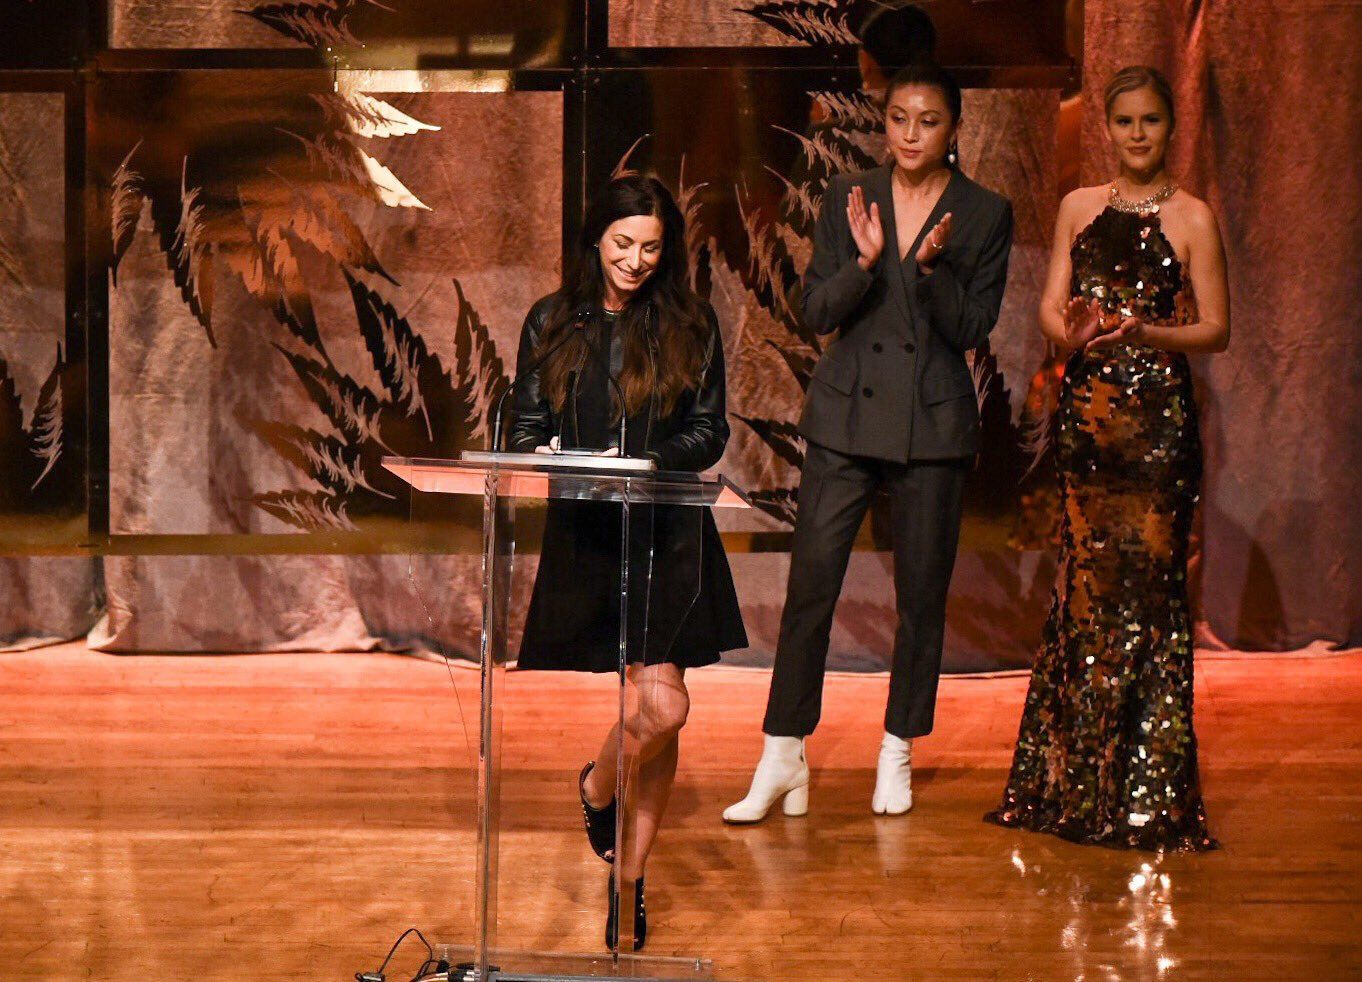 https://www.quadroncannatech.com/wp-content/uploads/2019/01/canadian-cannabis-awards-lift-and-co_rosy-mondin-women-in-weed_trailblazer-2018.jpg